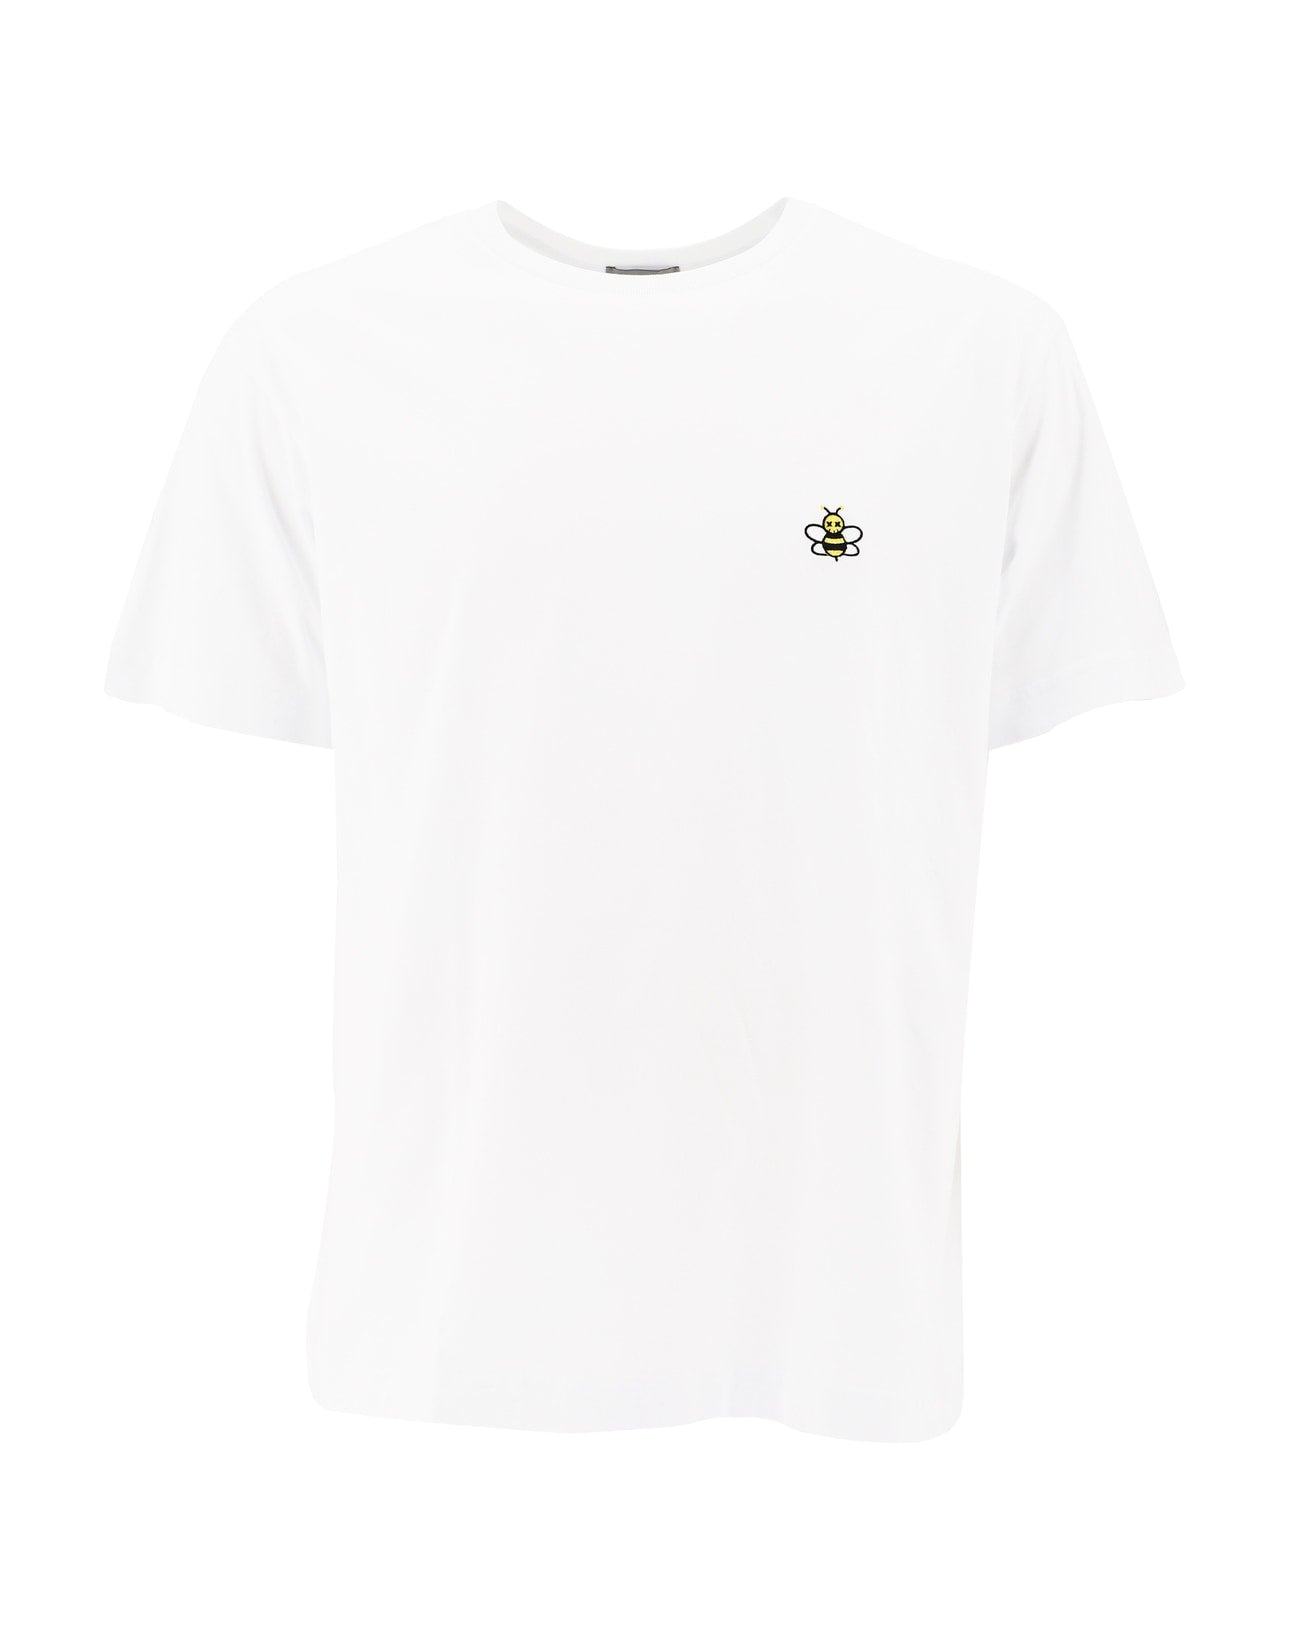 Dior Homme Tops DIOR HOMME X KAWS EMBROIDERED BEE T